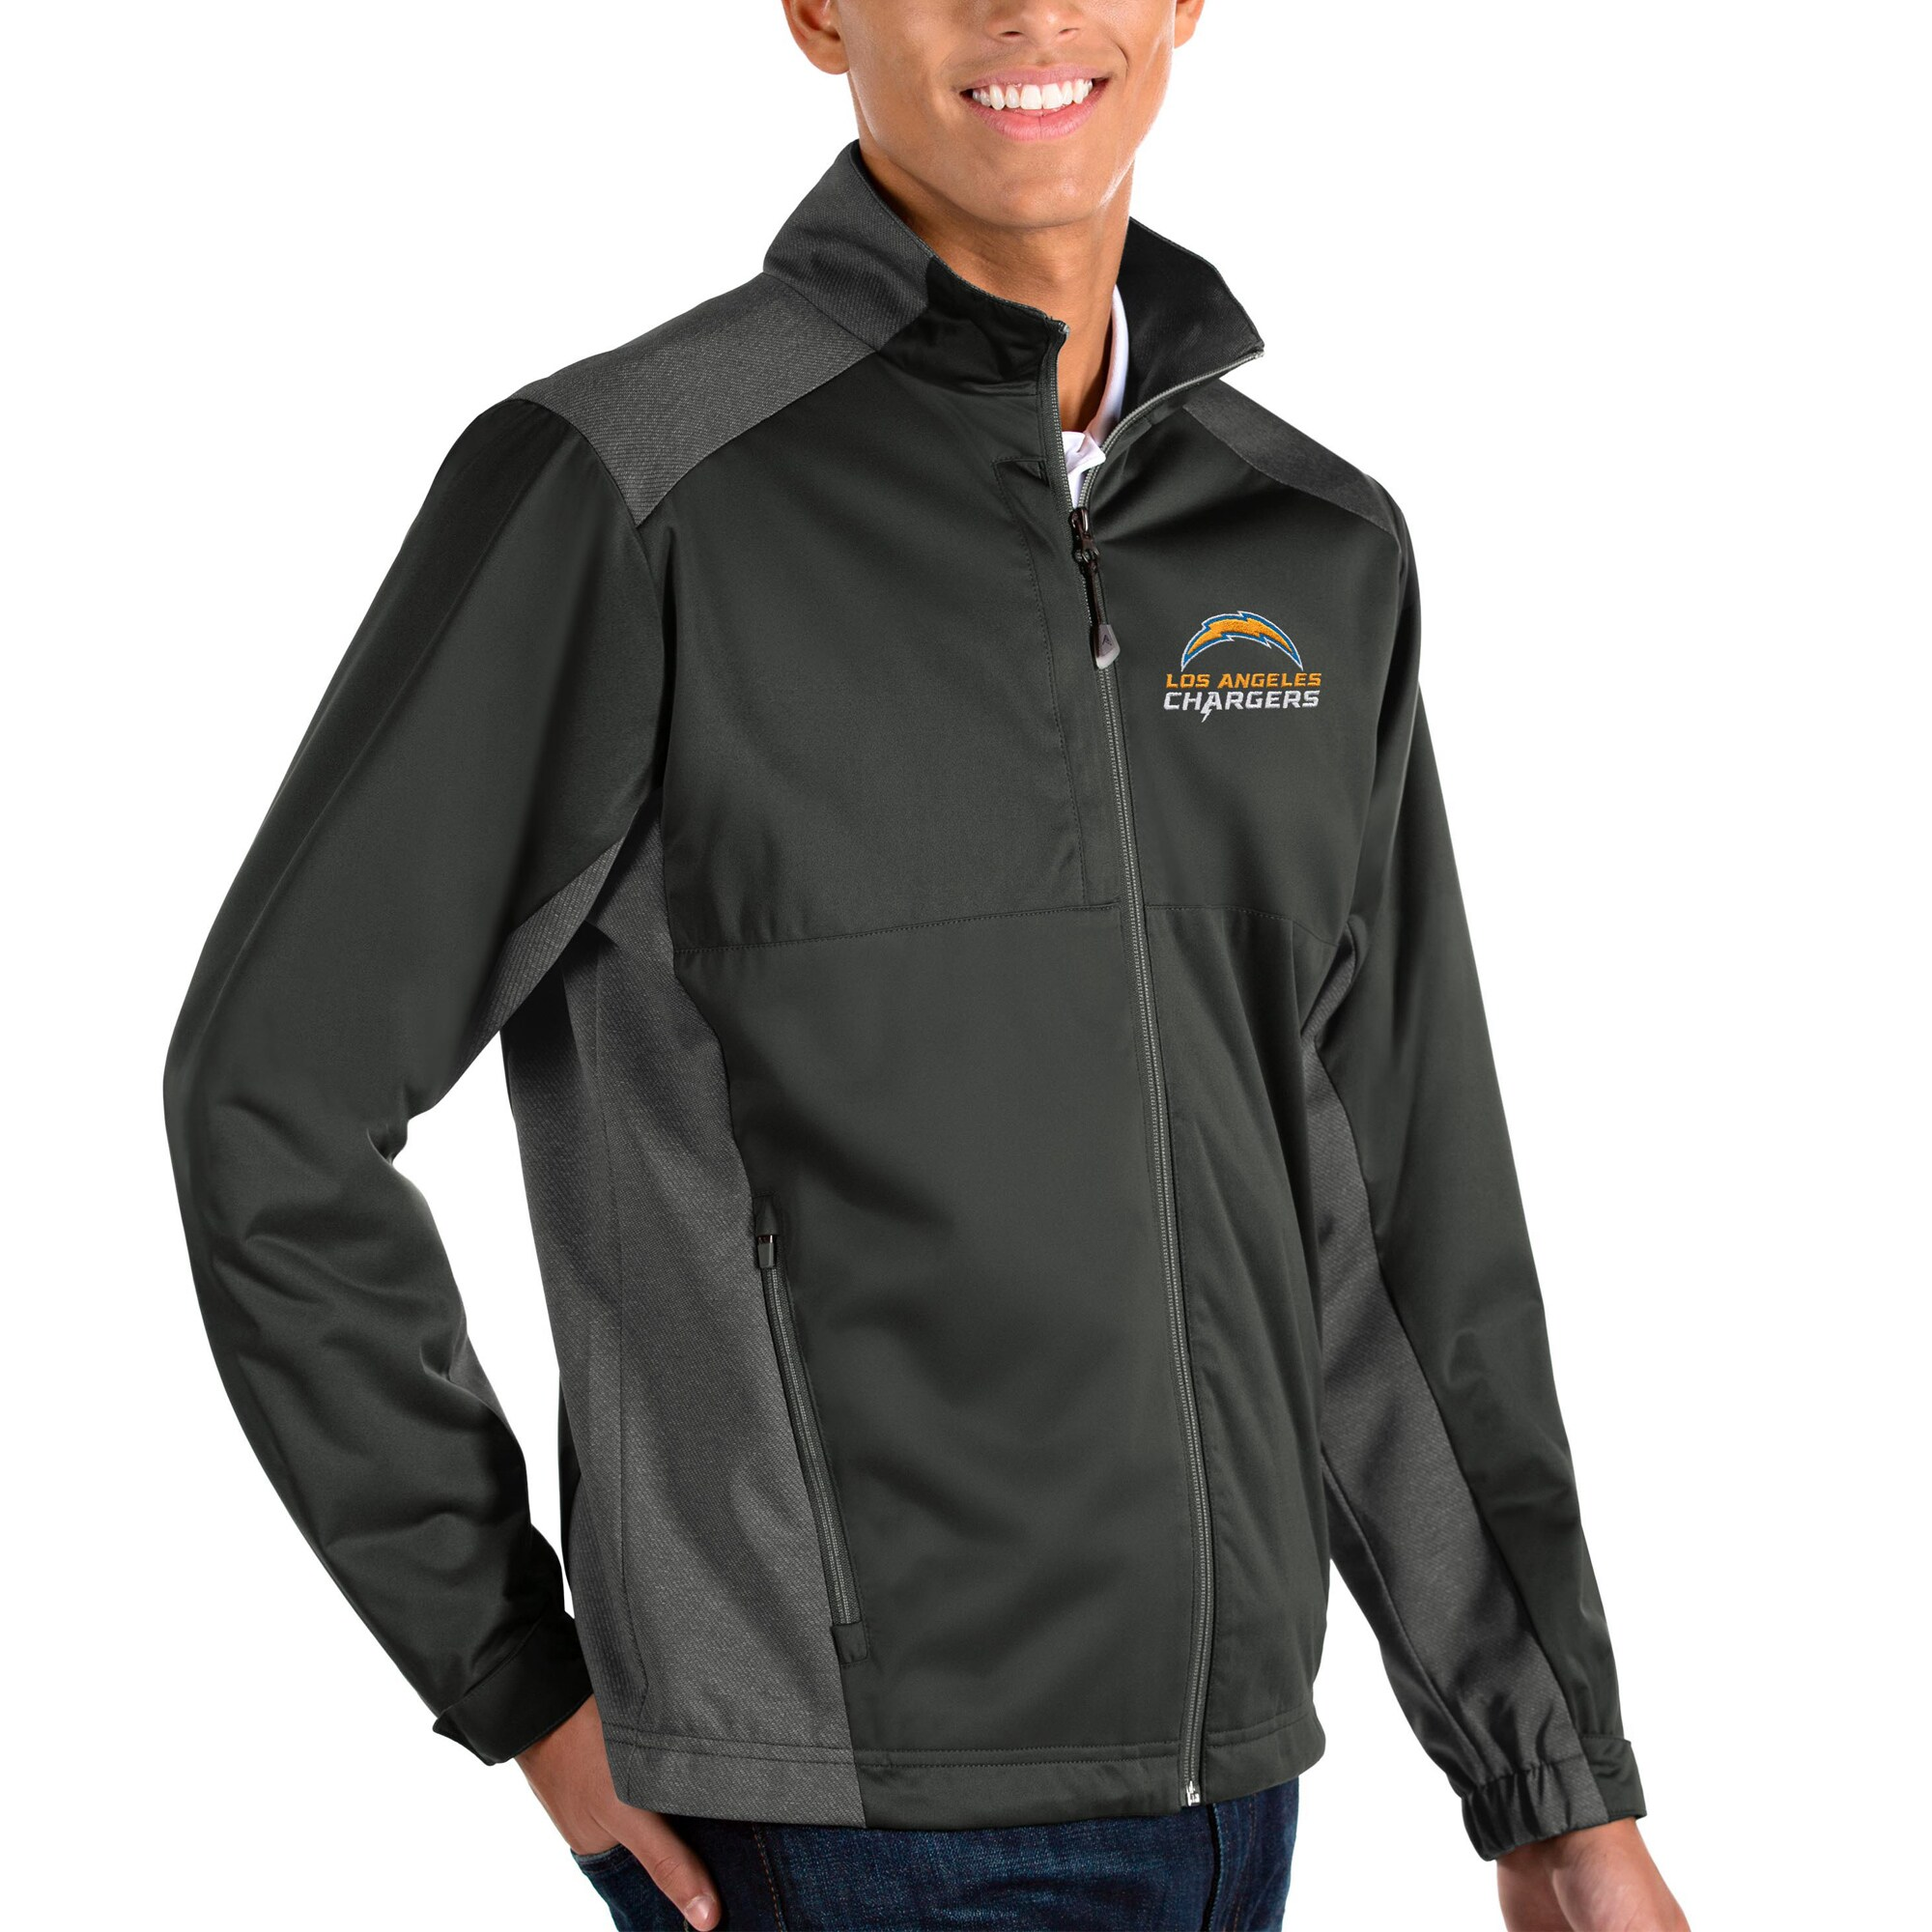 Los Angeles Chargers Antigua Revolve Full-Zip Jacket - Charcoal/Heather Charcoal